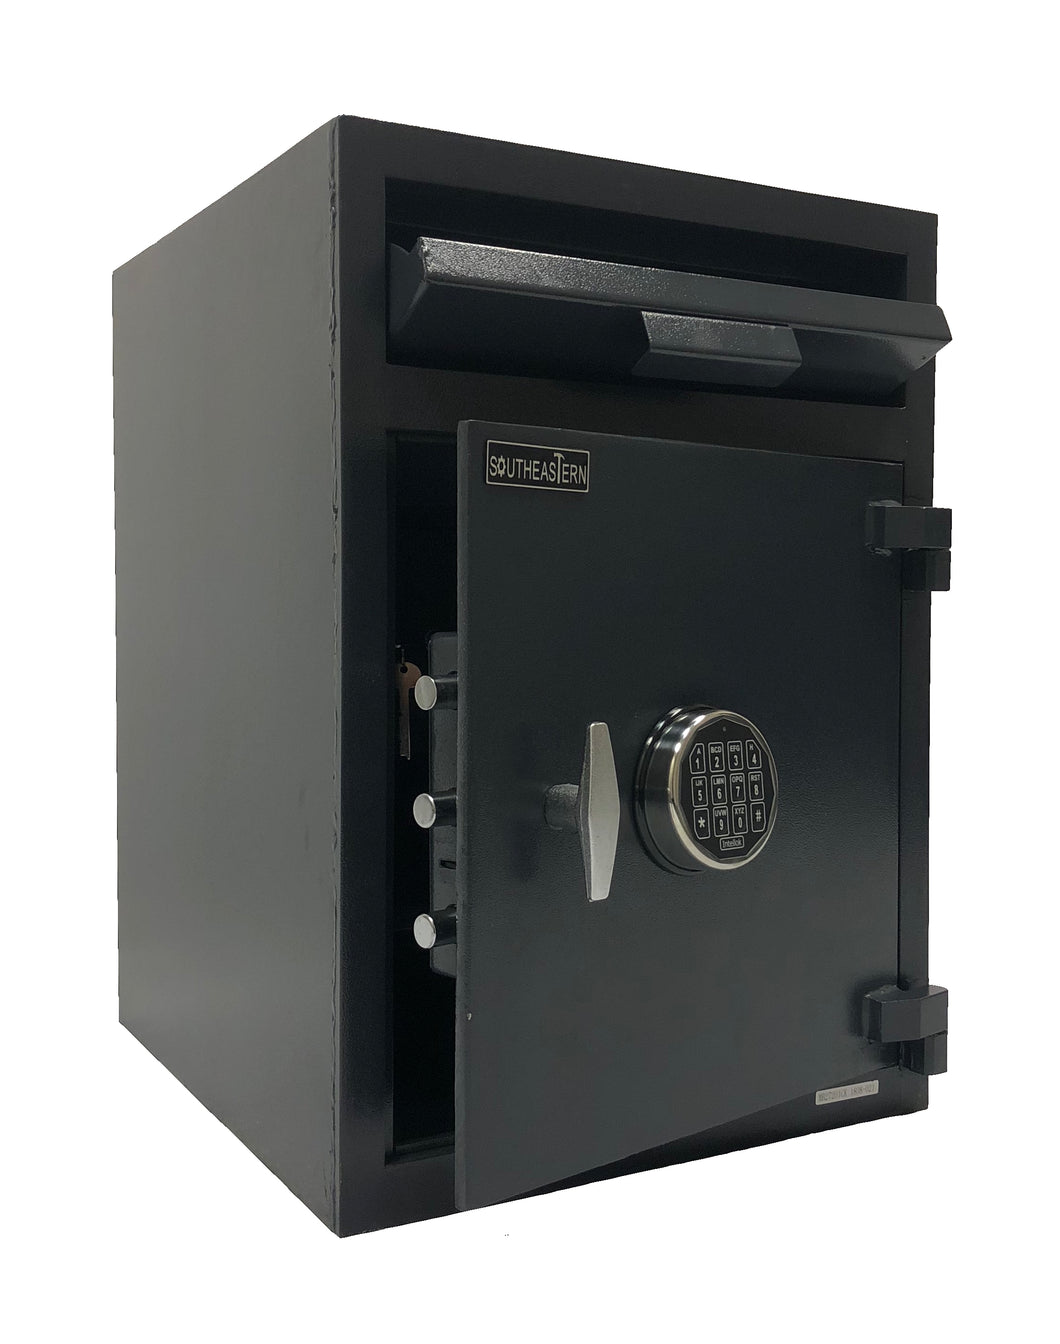 Southeastern F2820ILK Cashbag Drop Depository Safe with Quick Digital Lock w/Inner Dual Key Locker